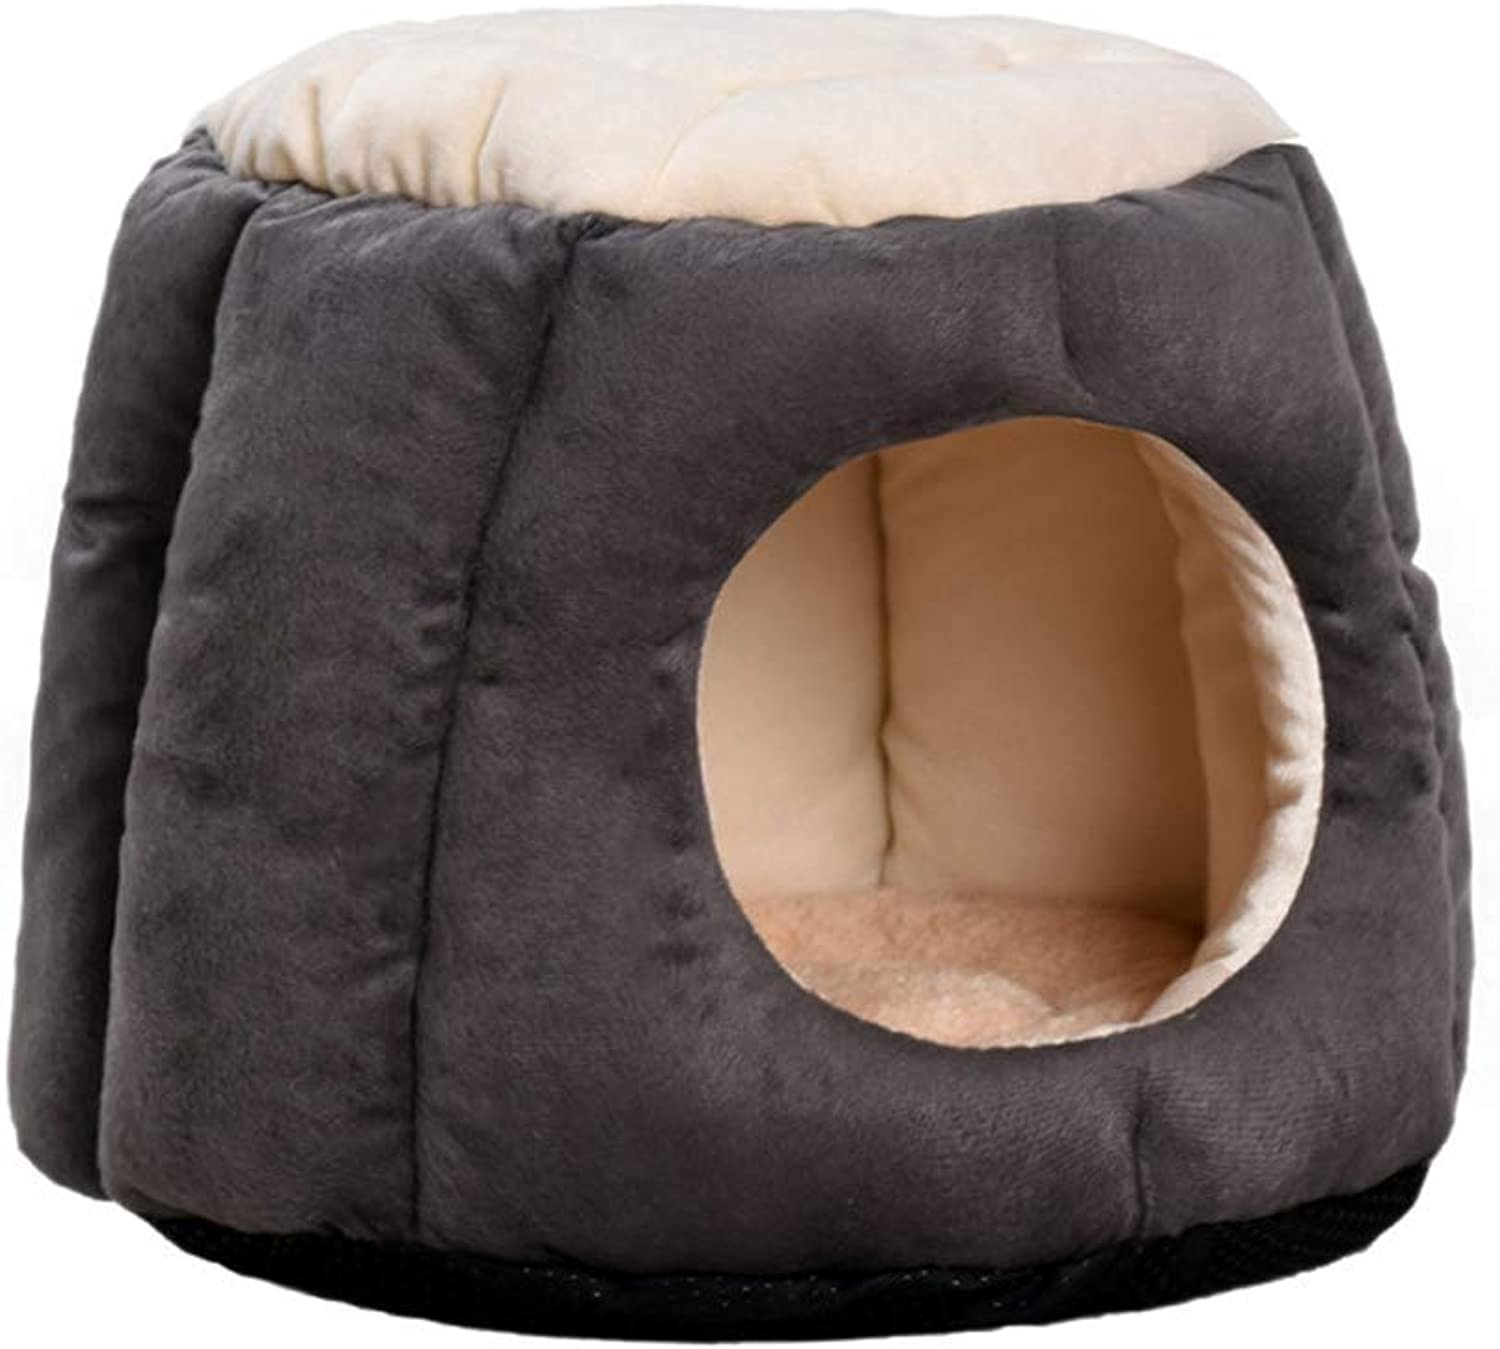 Pet nest, PP cotton semiclosed winter cat dog warm bed sofa, 3 colors   2 sizes